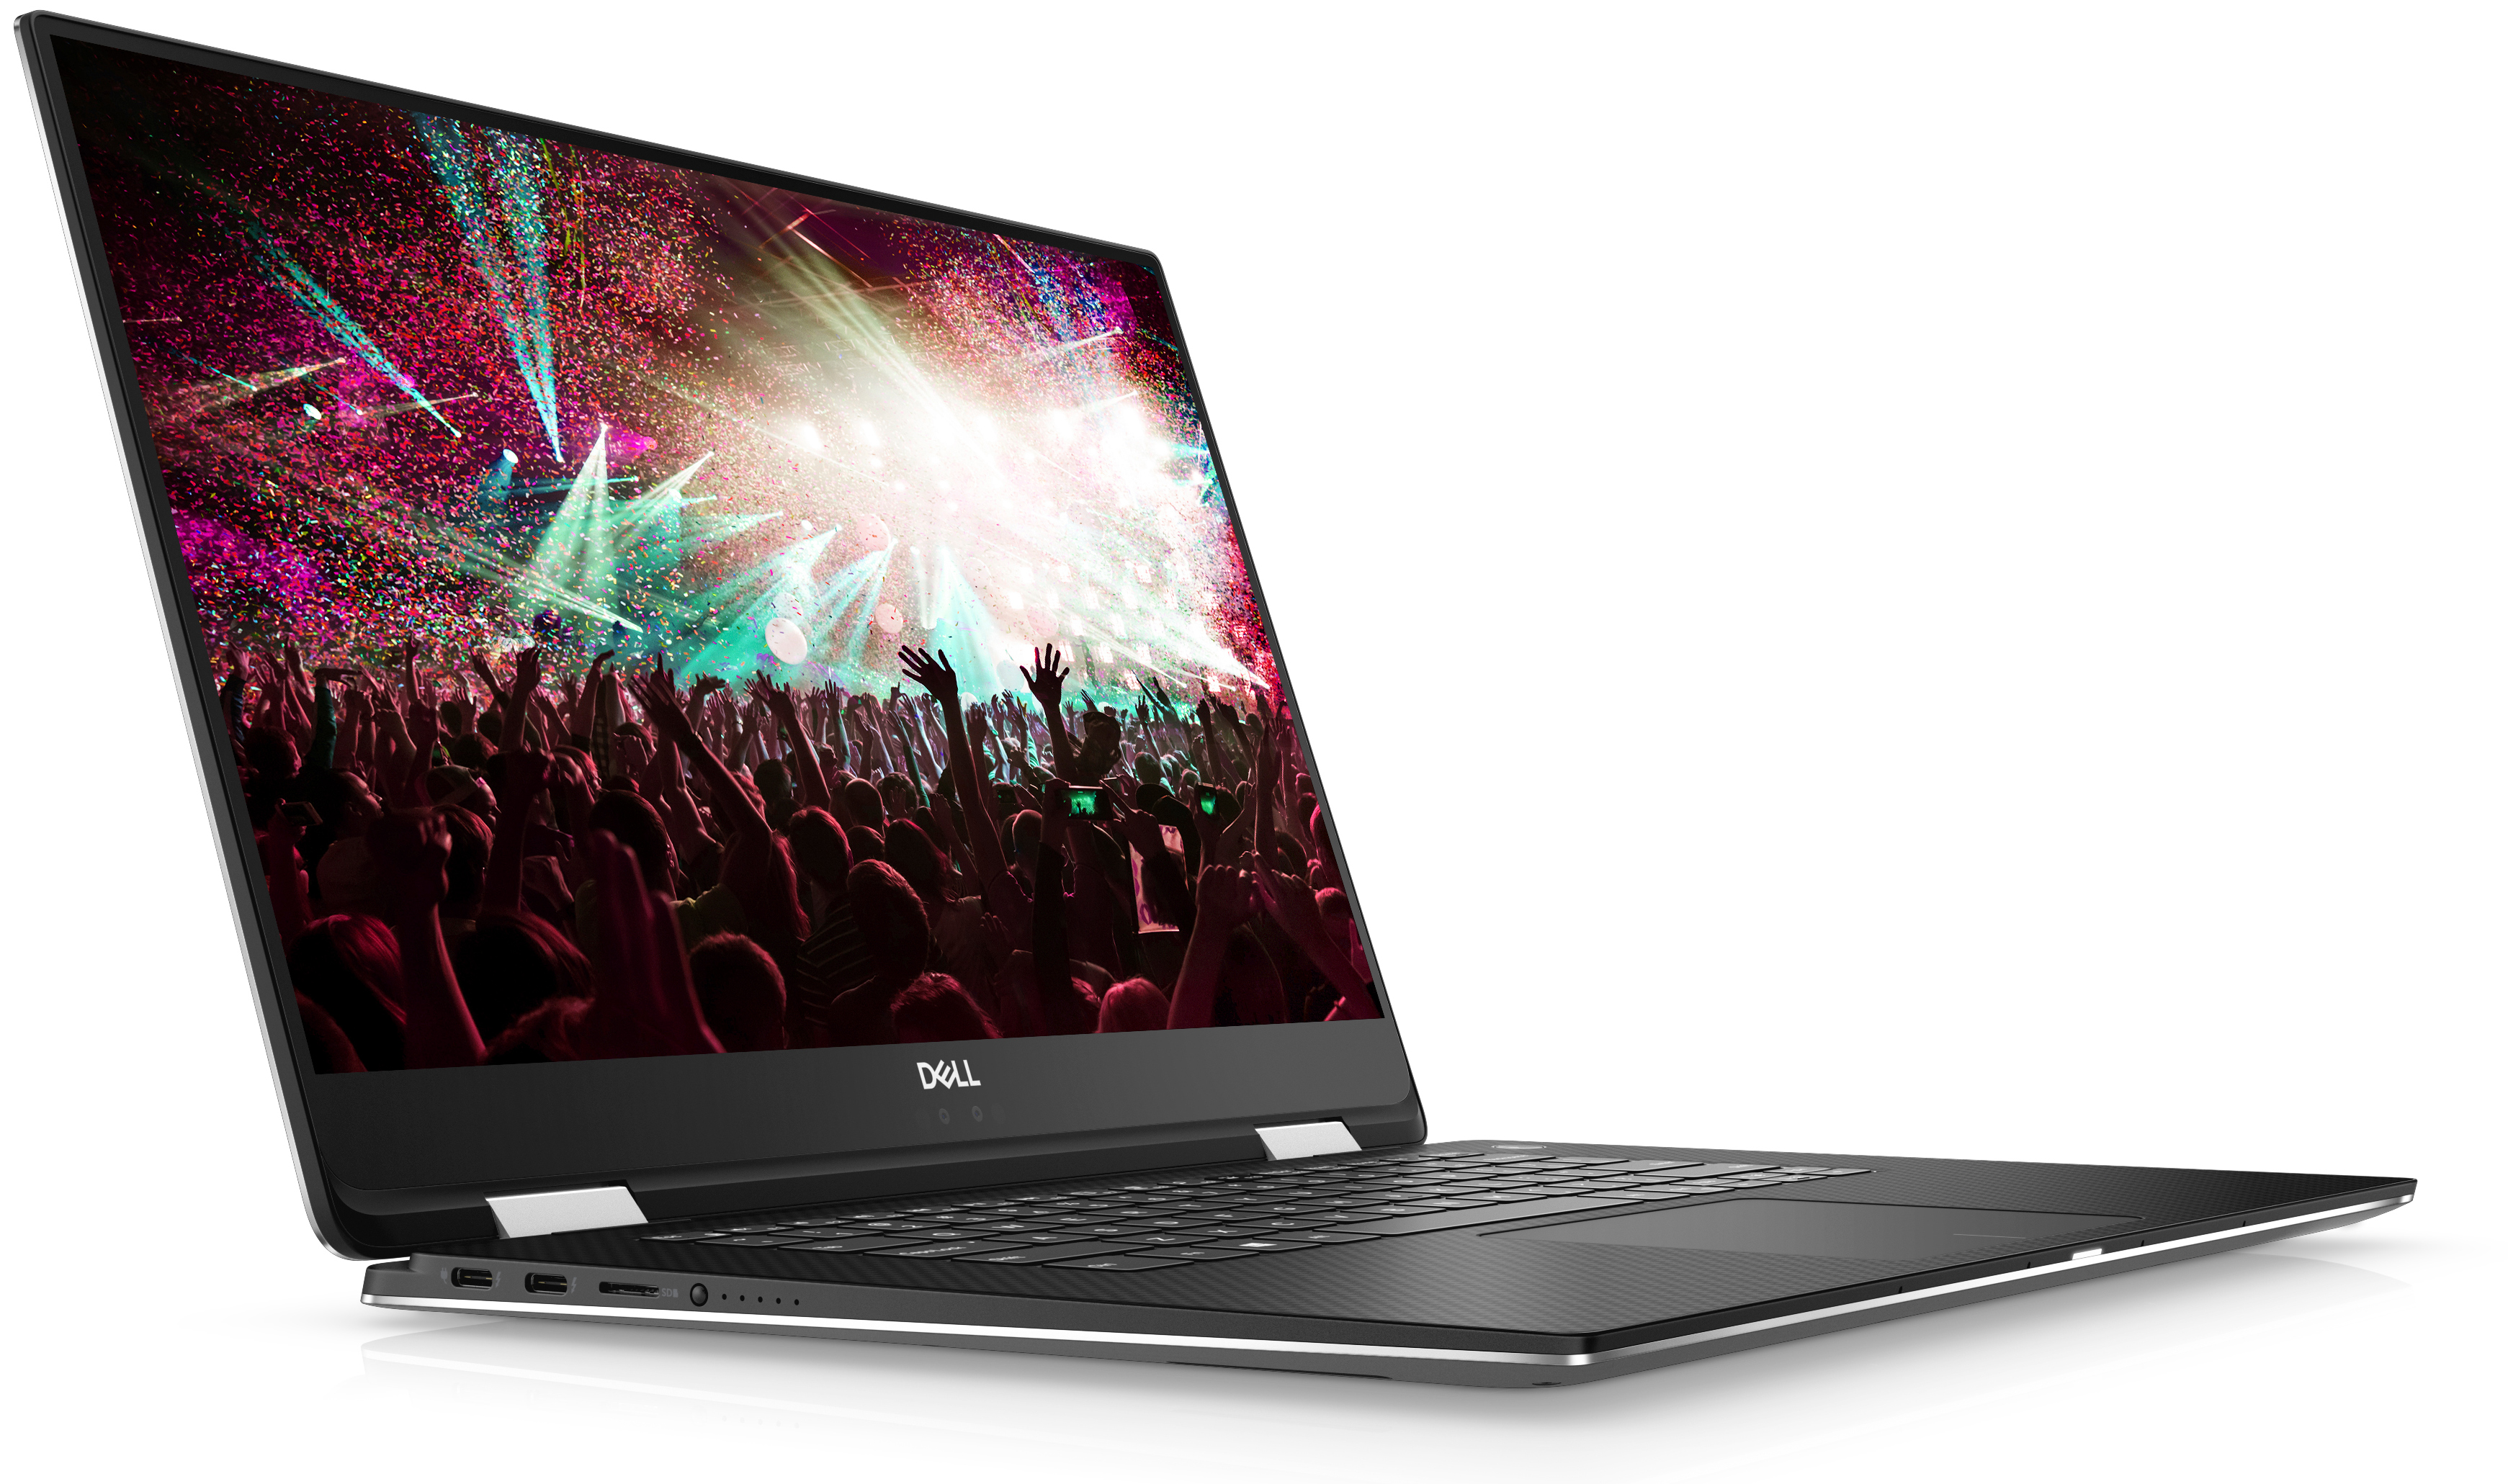 Dell XPS 15 2-in-1 Intel Core i7-8705G